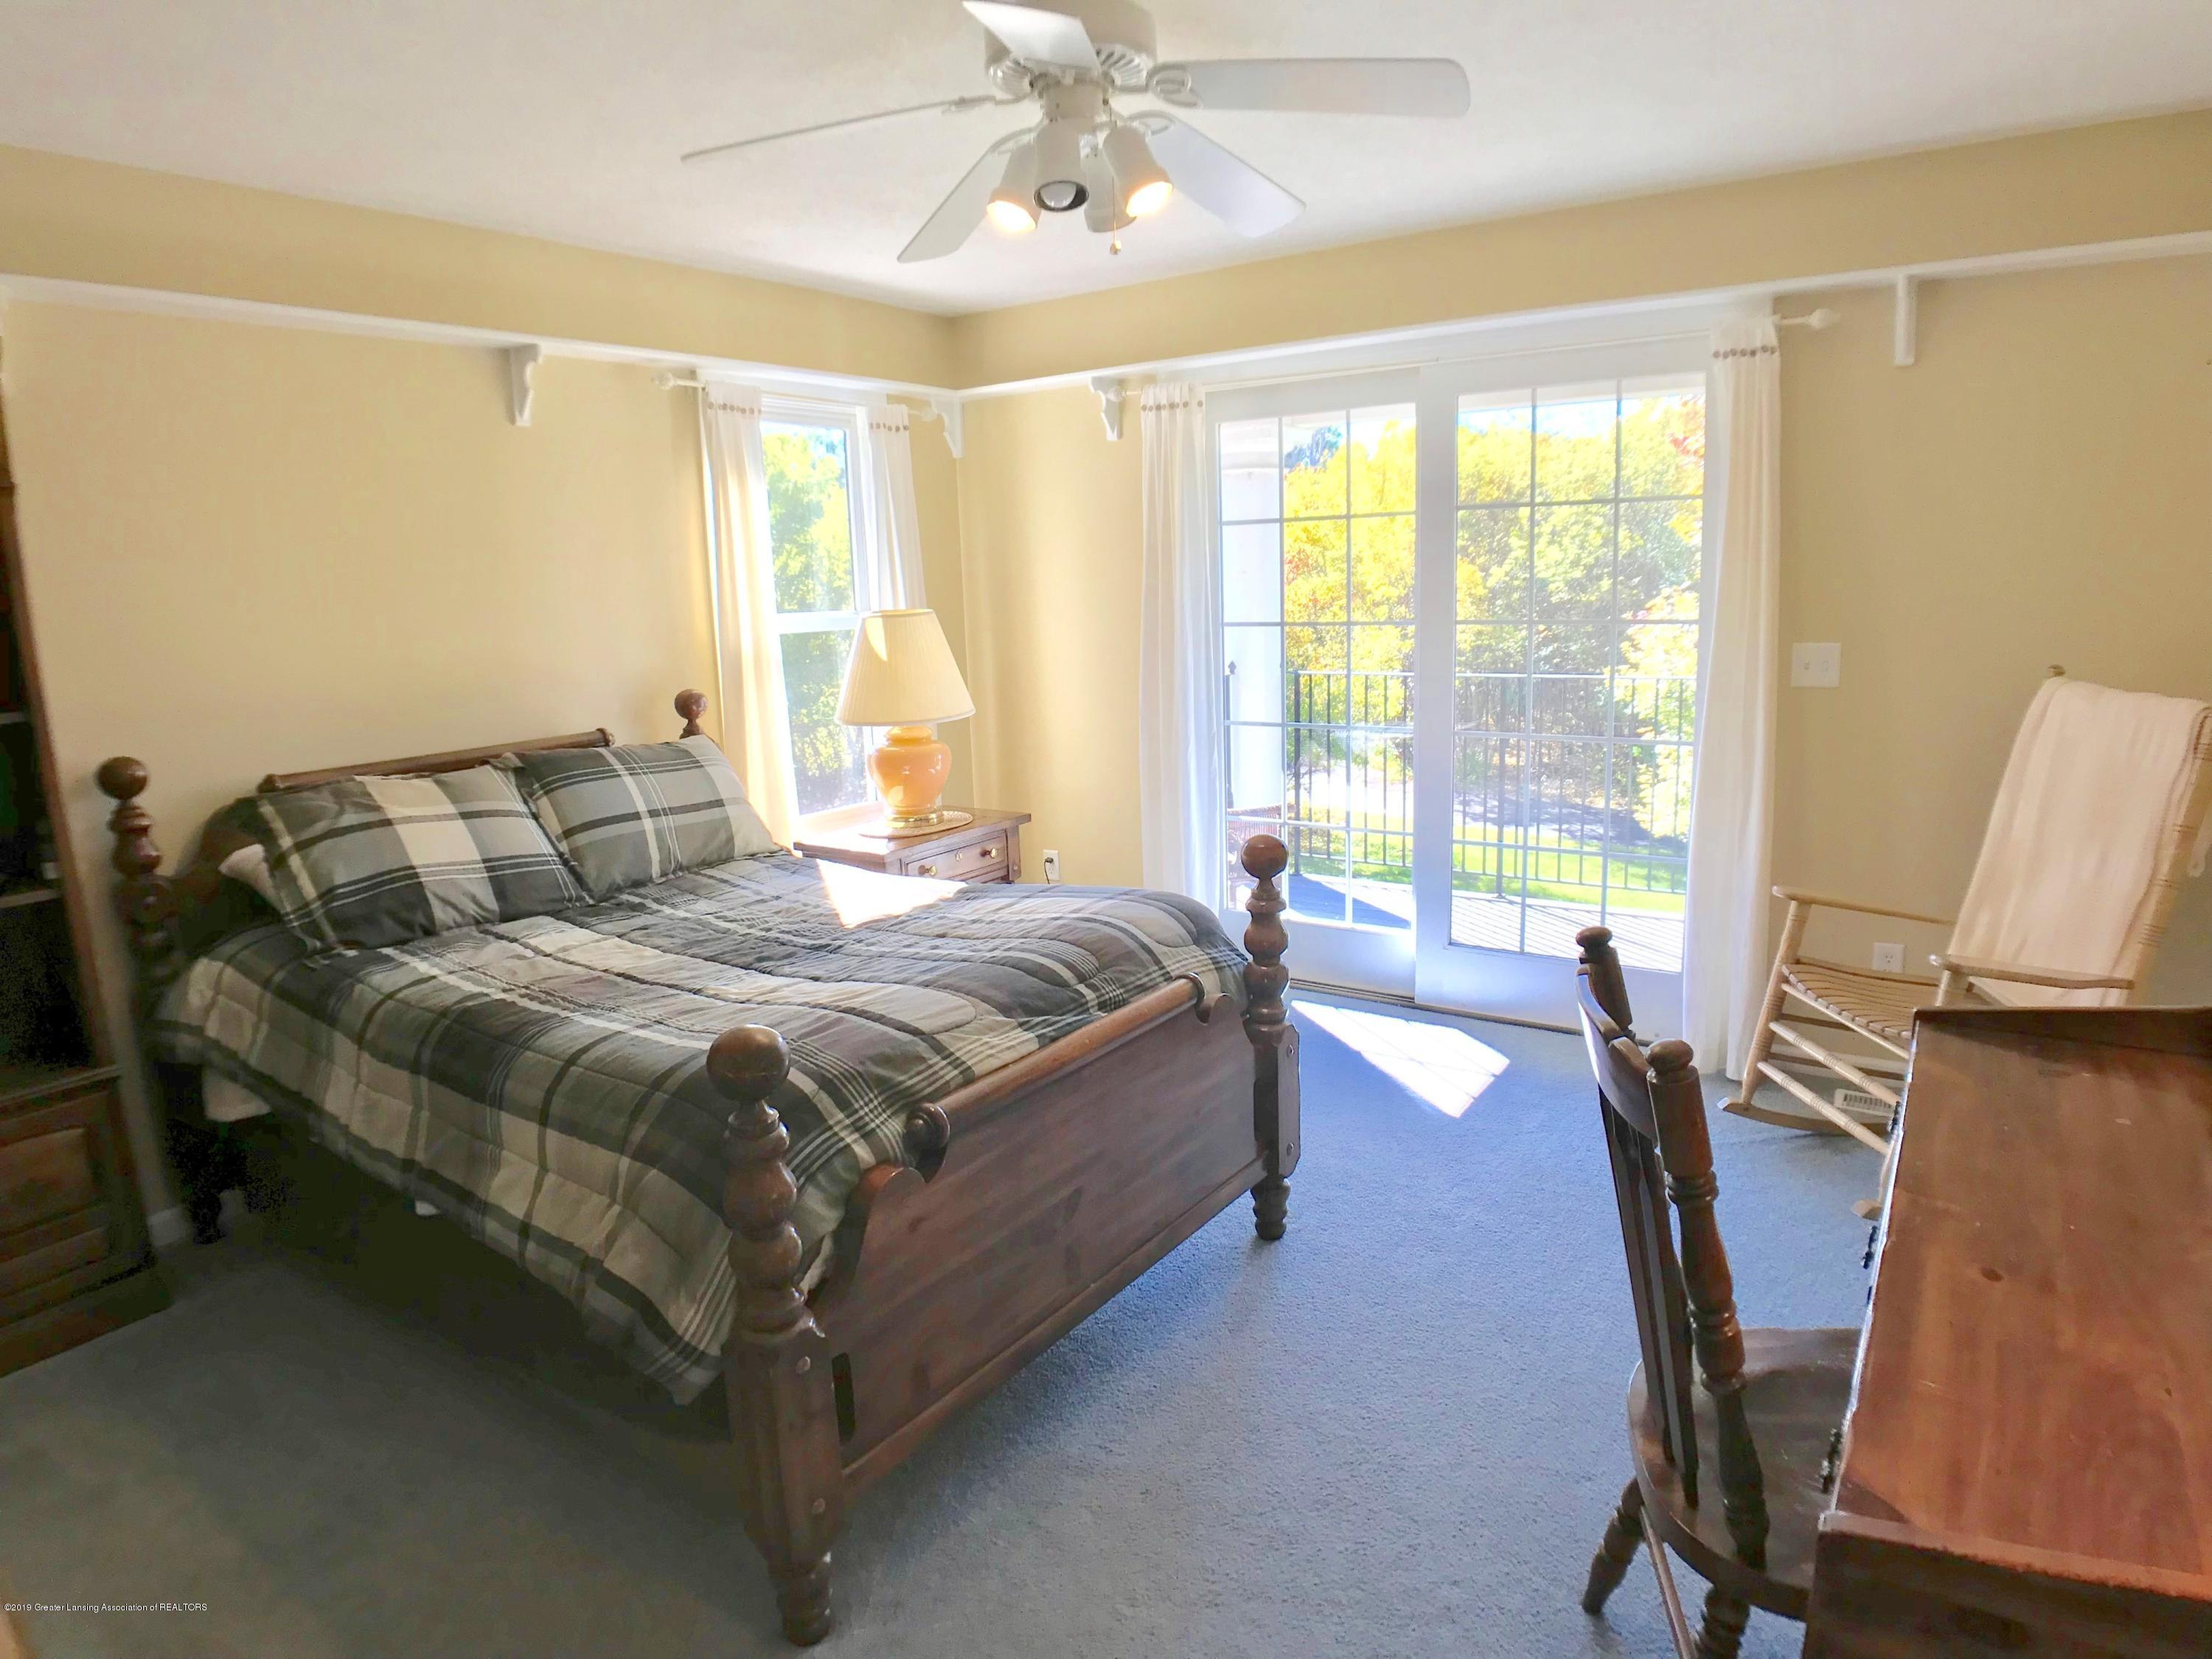 6430 Quail Ridge Ln - Bedroom - 34